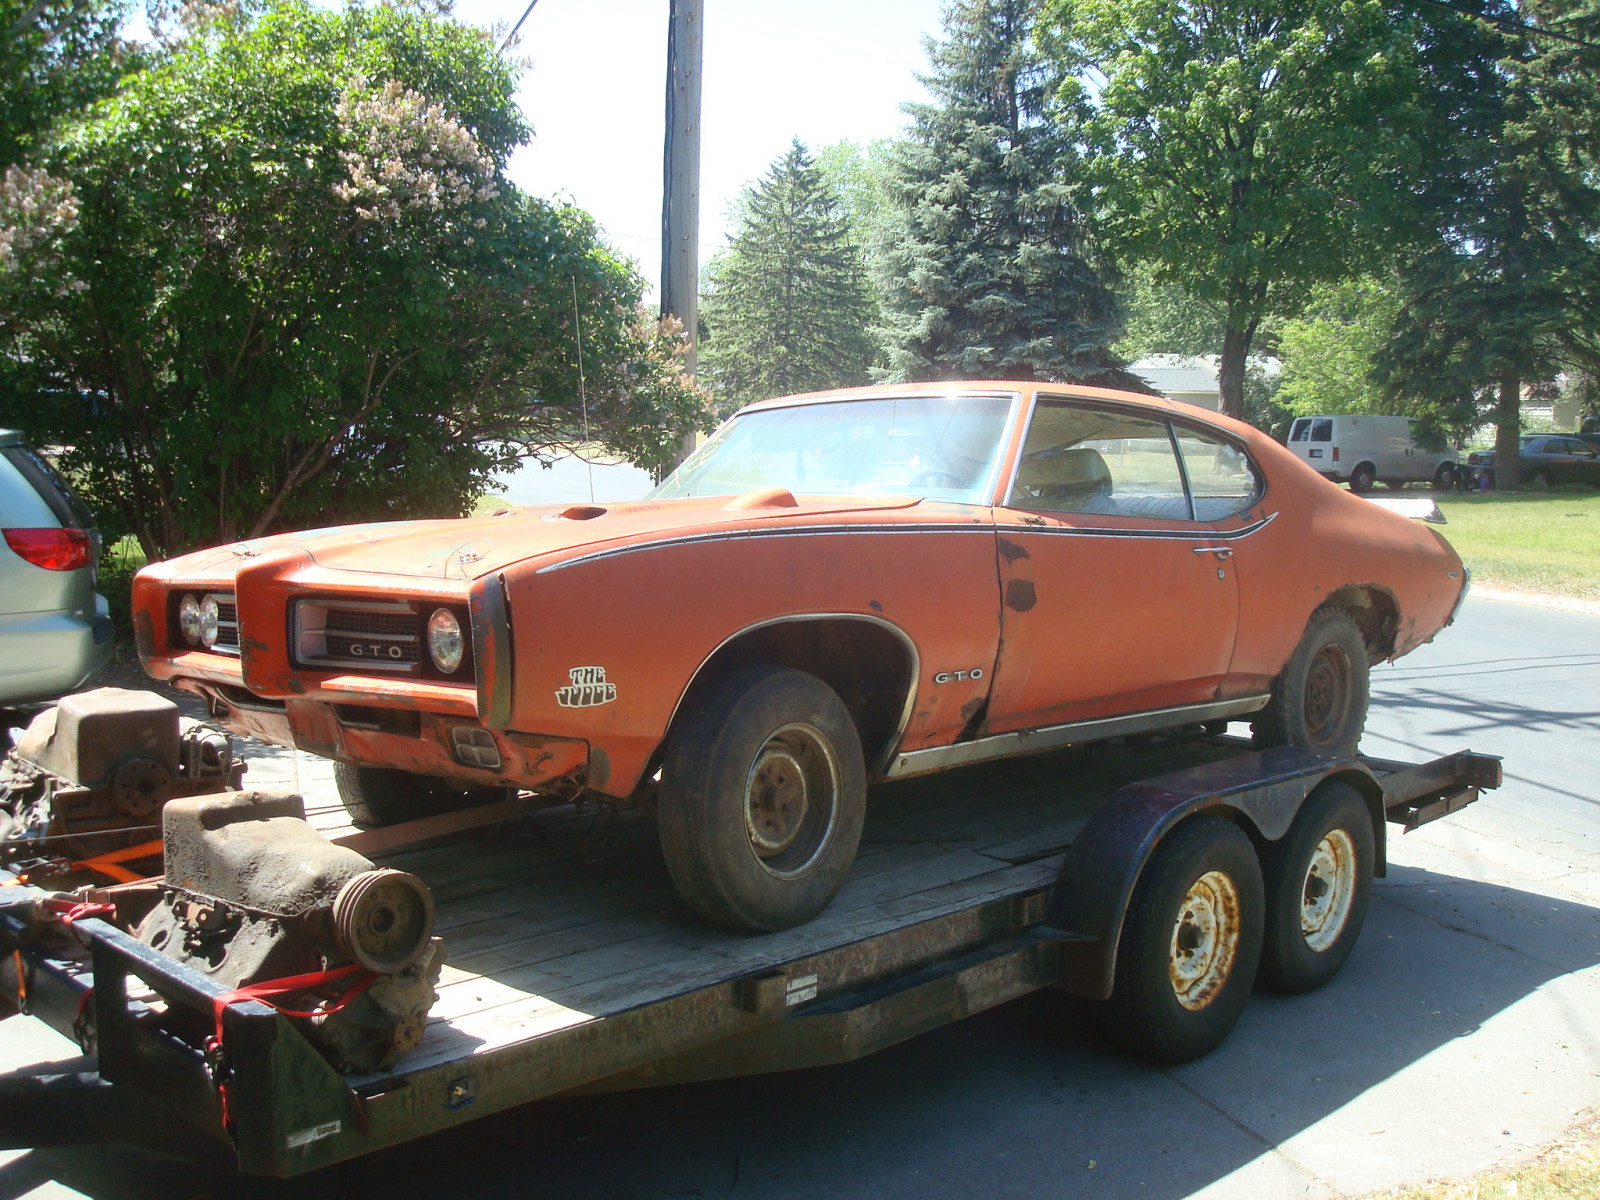 1969 Pontiac GTO RAM AIR IV Coupe Project - Image 1